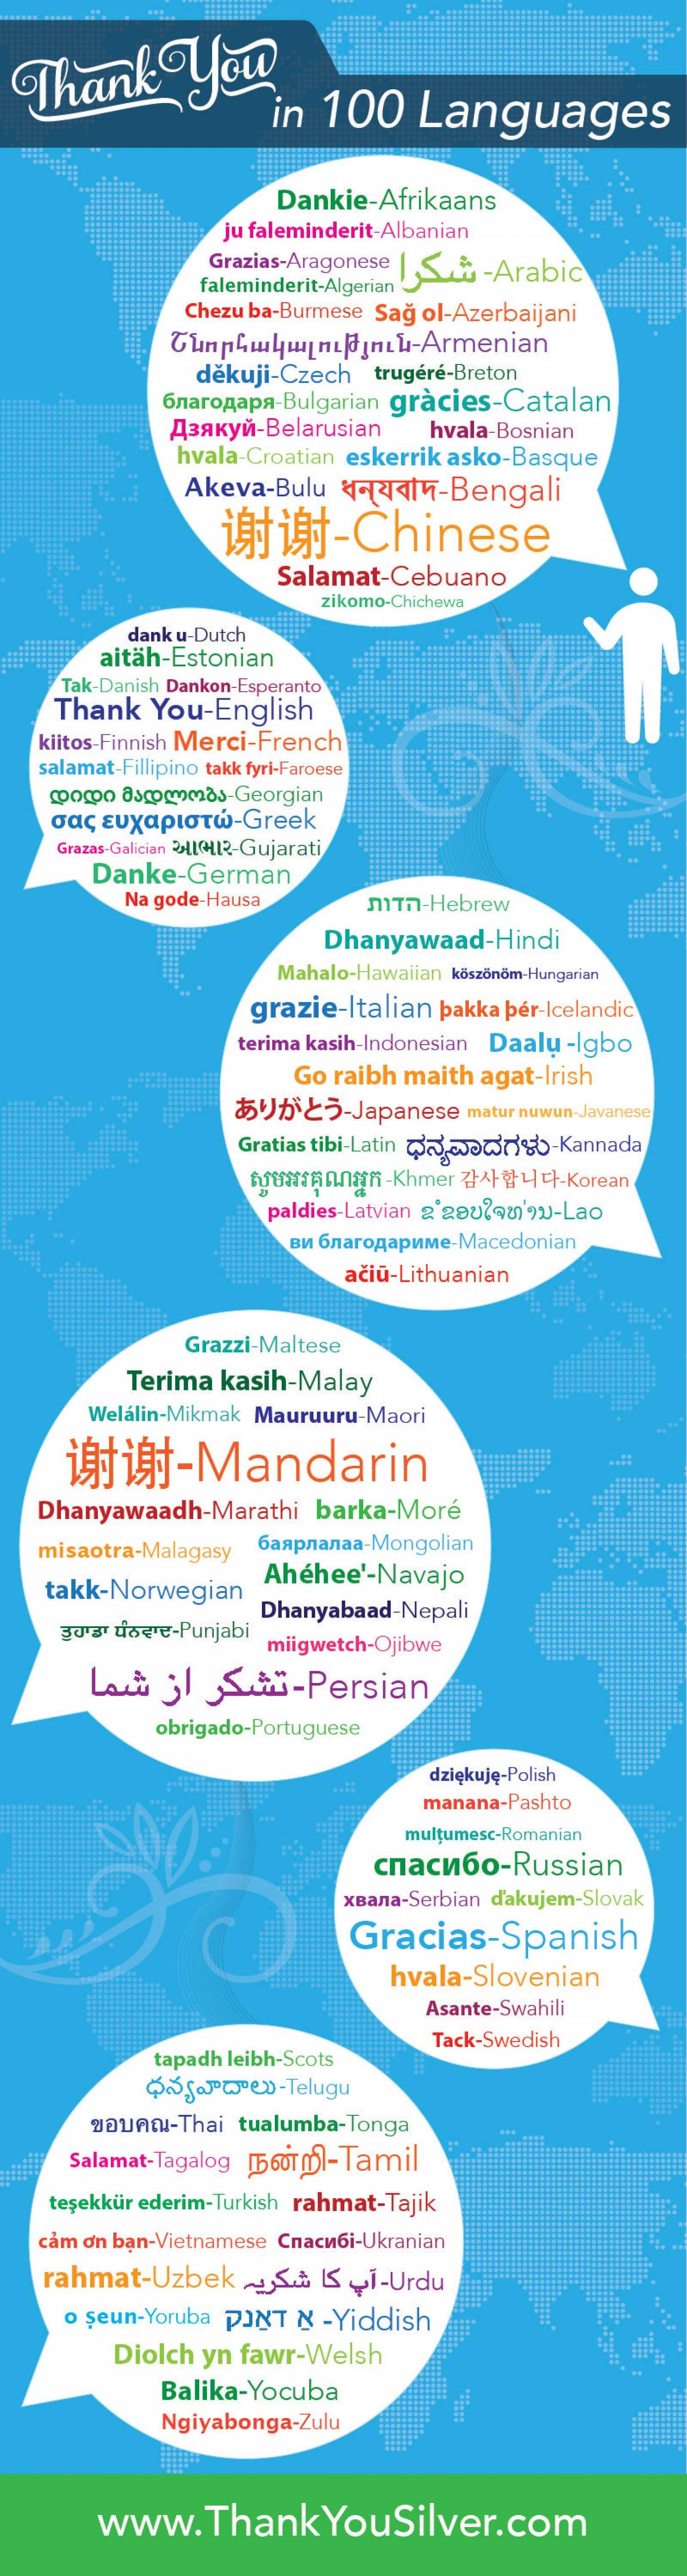 How To Say Thank You In 100 Languages